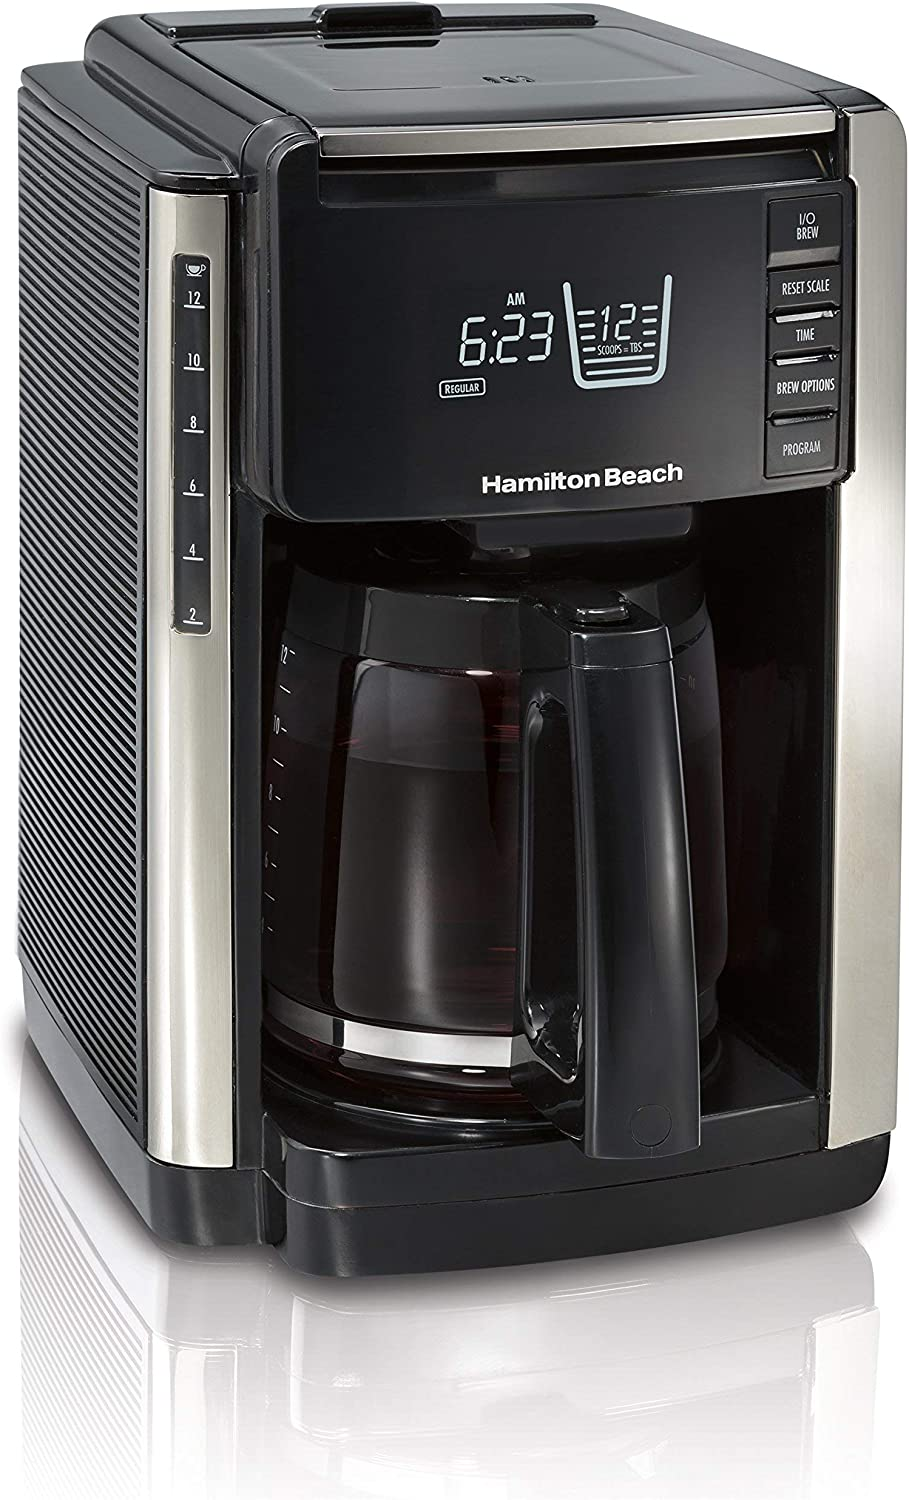 Hamilton Beach 45300R TruCount Coffee Maker, 12 Cup, Black (Renewed)